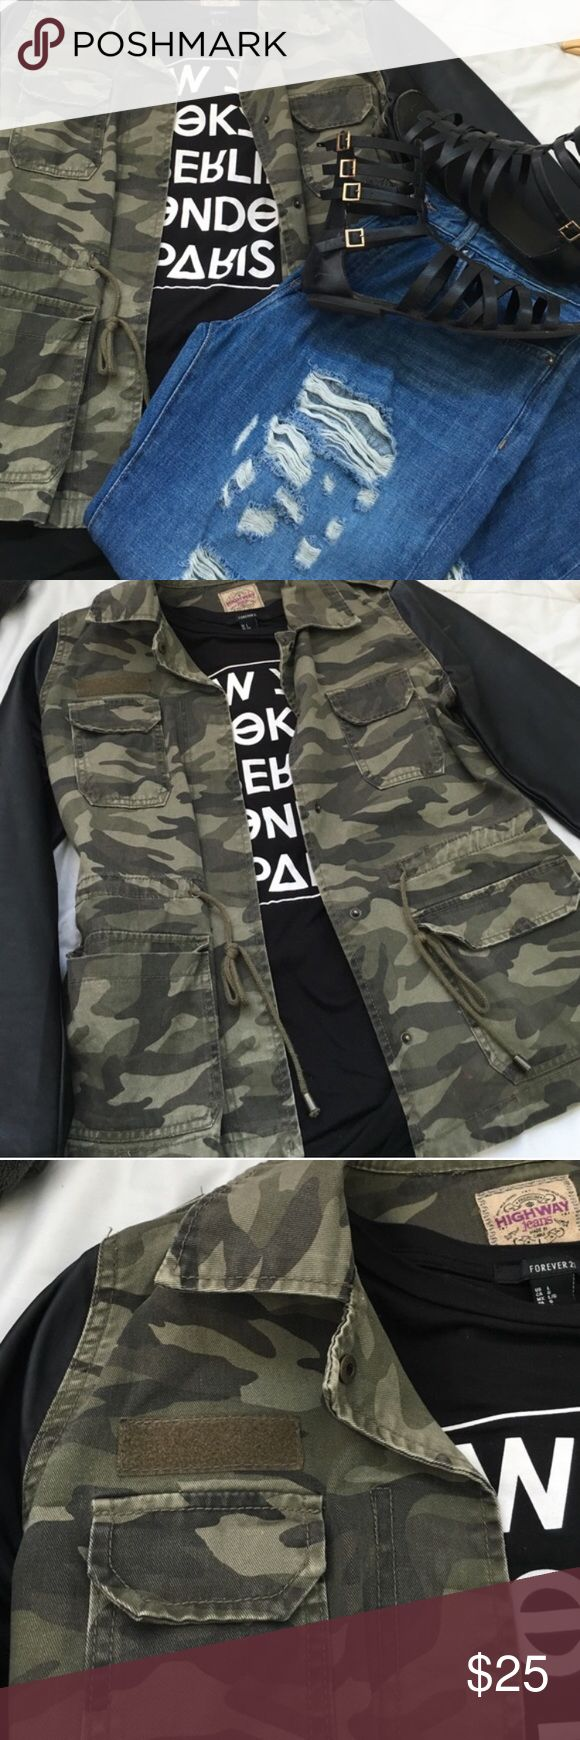 Faux Leather Army Jacket Faux leather sleeves. Canvas like material with a camouflage design. Adjustable Drawstring. The only con is a patch missing as you can see in the third picture. Make an offer ✨ Highway Jeans Jackets & Coats